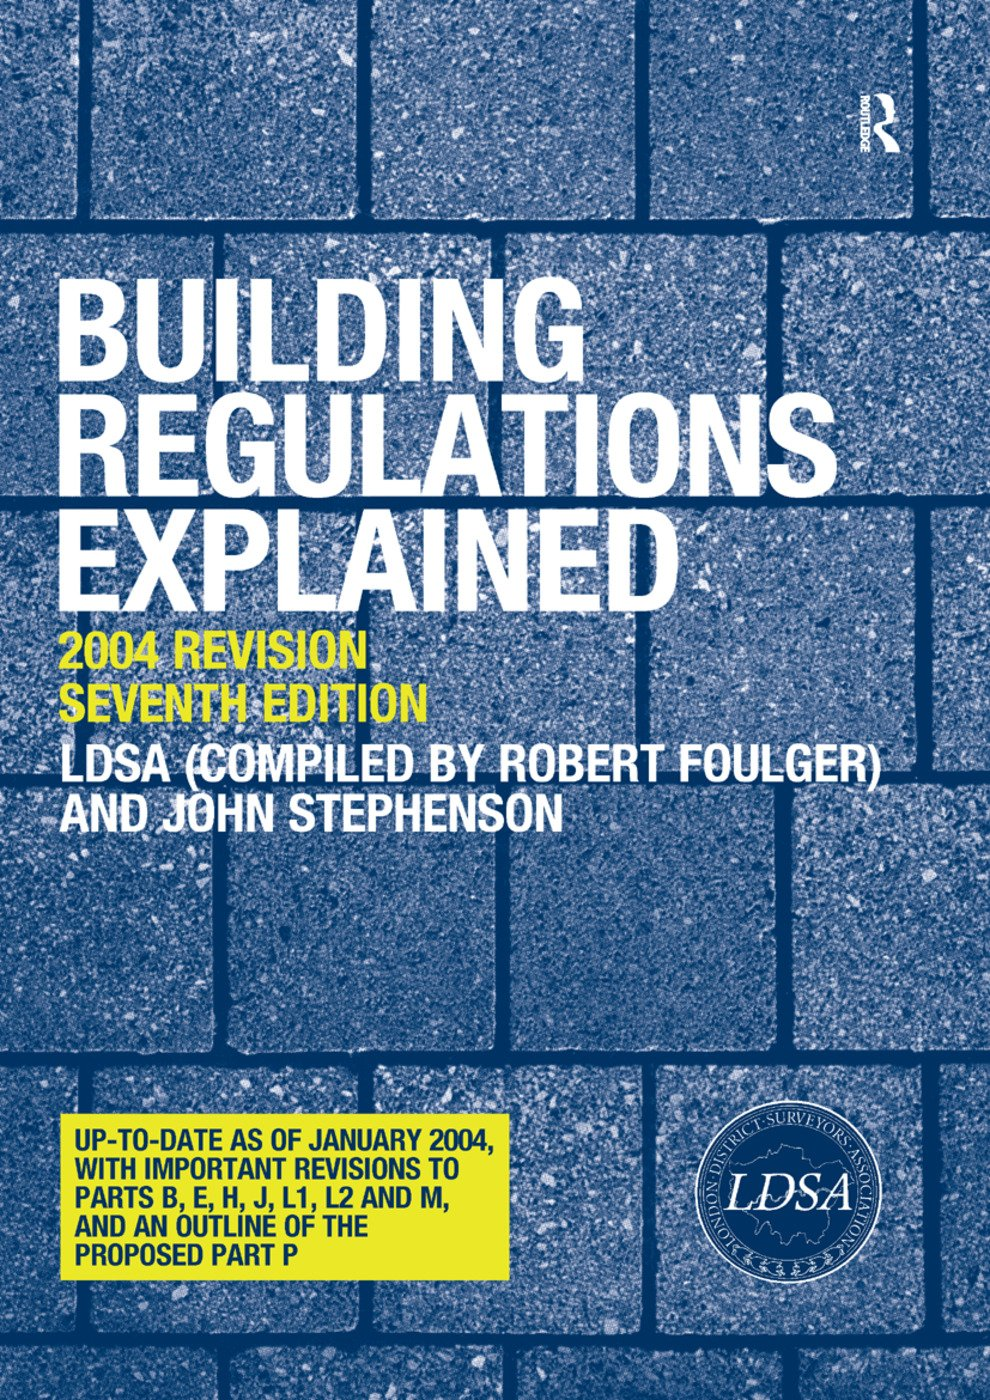 Building Regulations Explained book cover